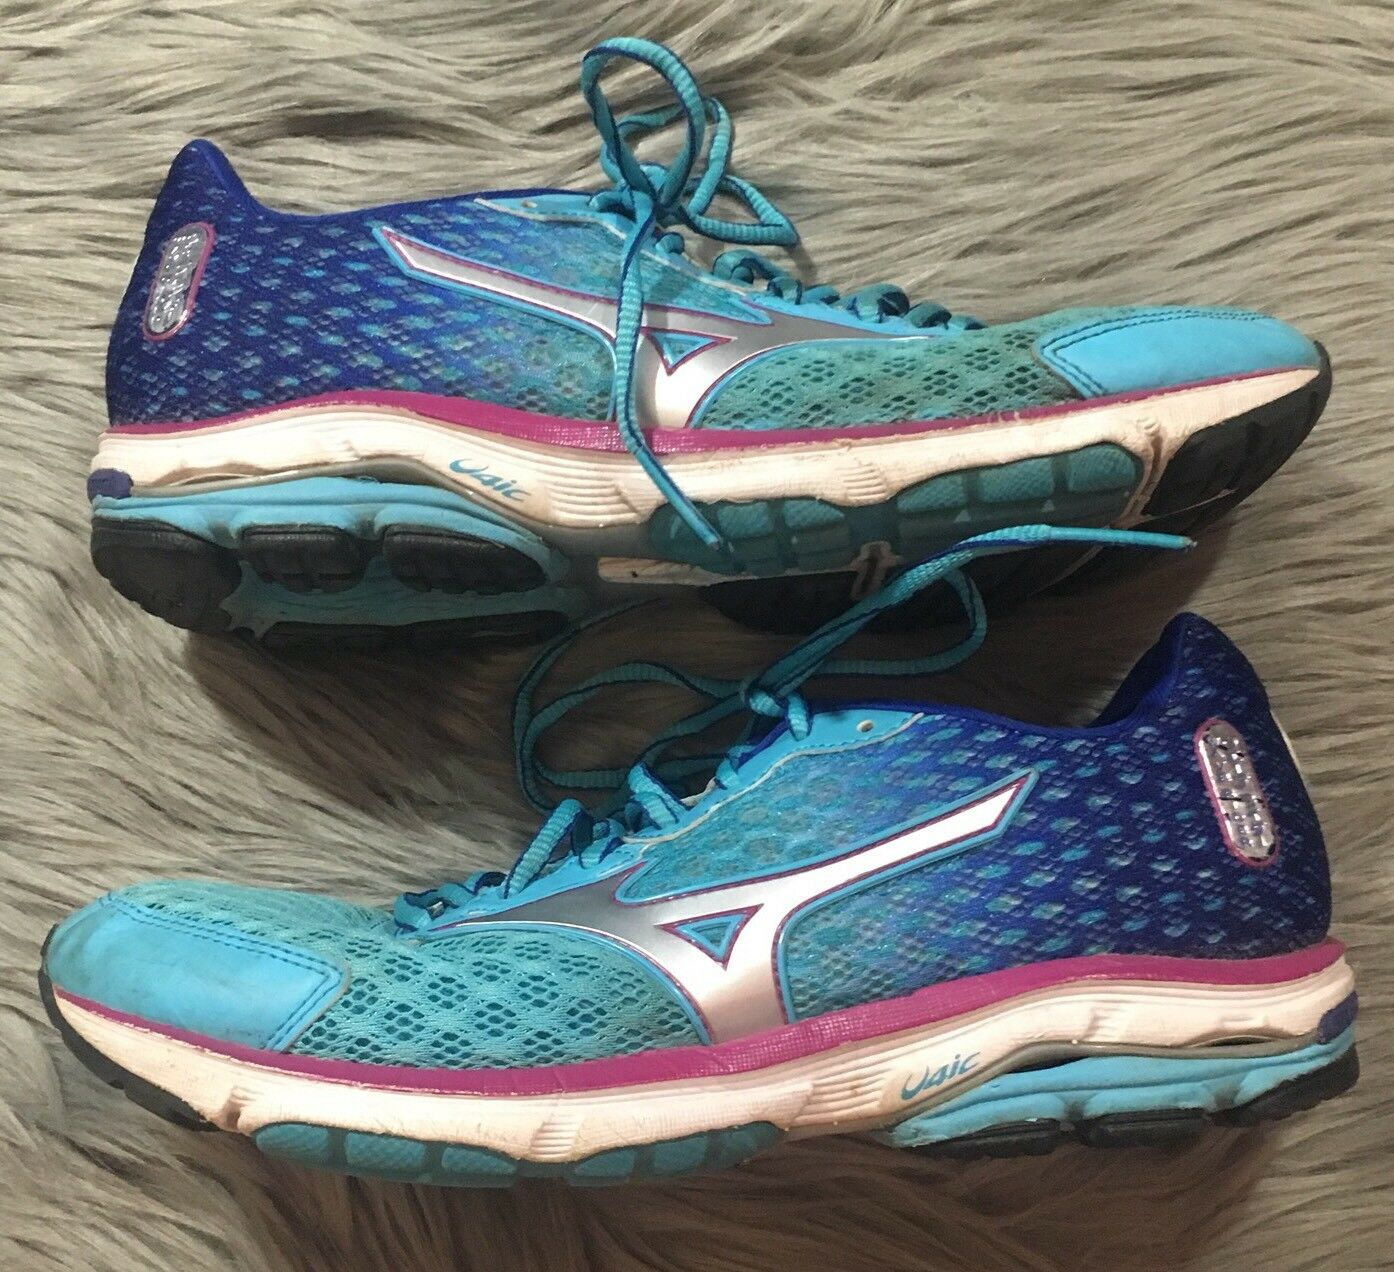 MIZUNO Wave Rider 18 Mesh Running shoes - Turquoise bluee Magenta - Women's W9